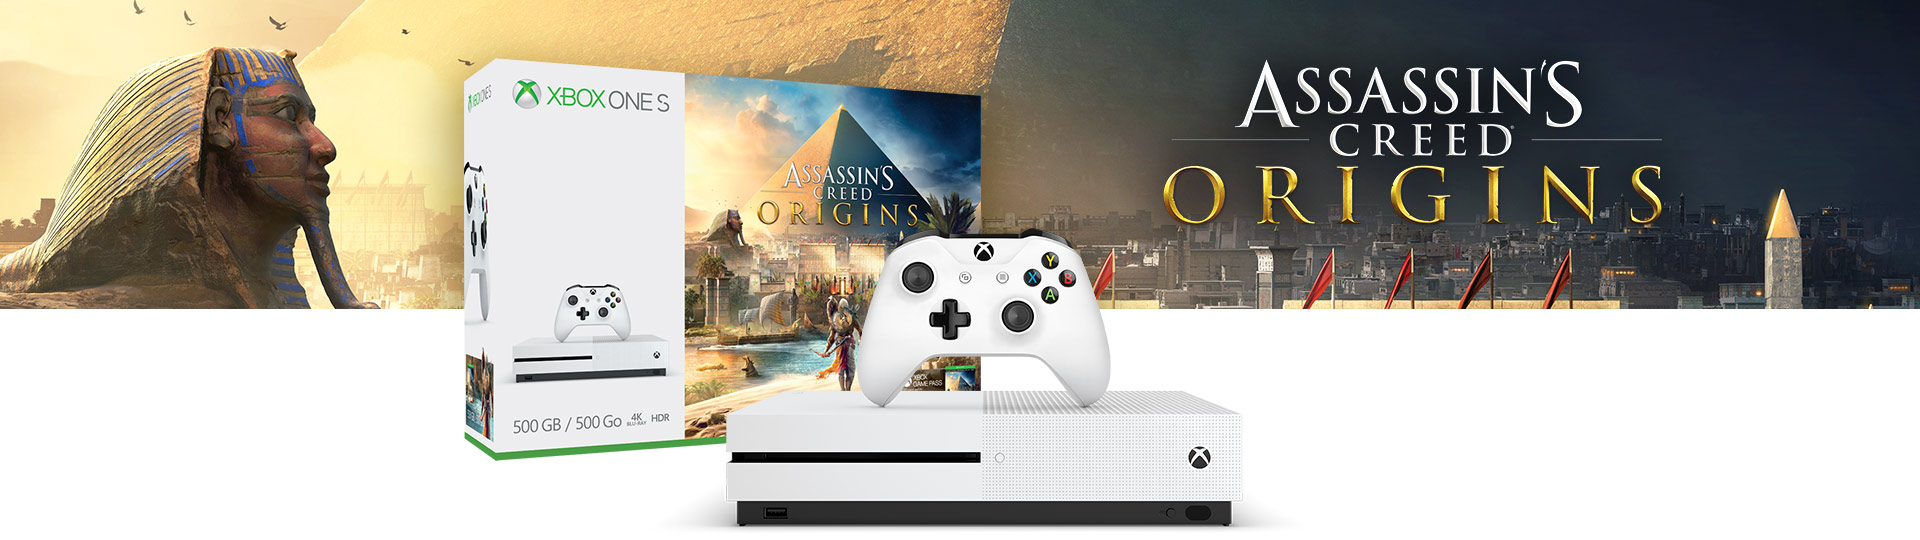 Xbox One S Assassin's Creed: Origins-bundel (500GB)